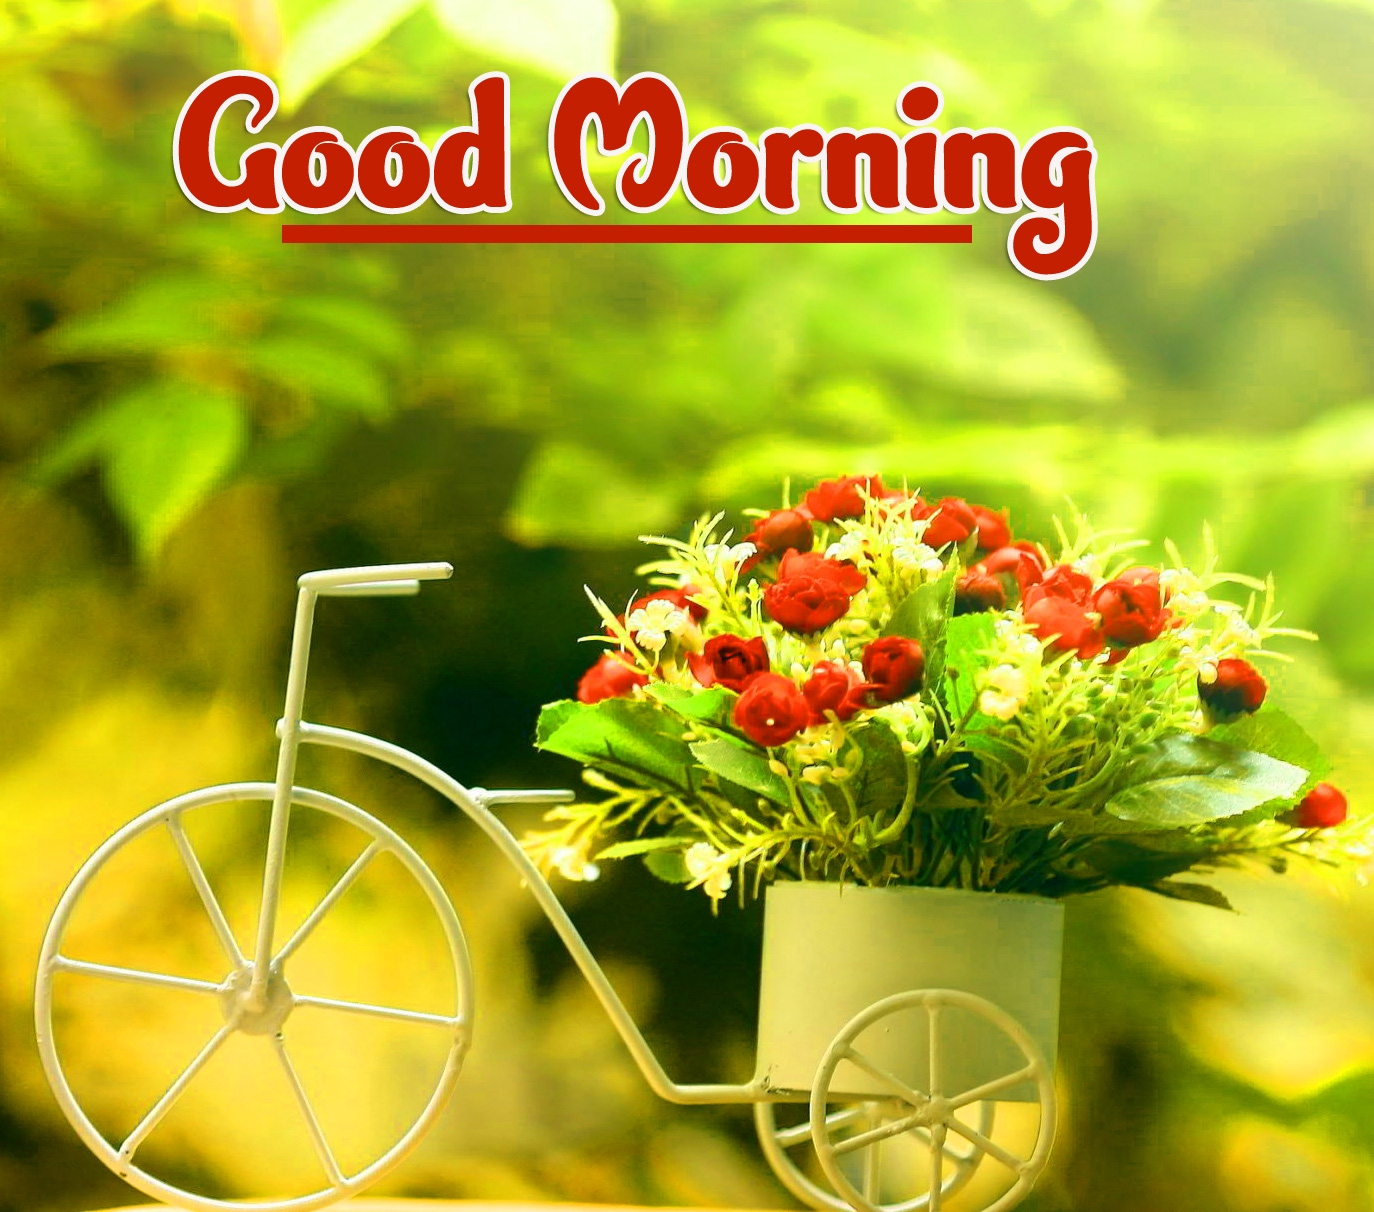 Good Morning Wallpaper Pics Free Latest